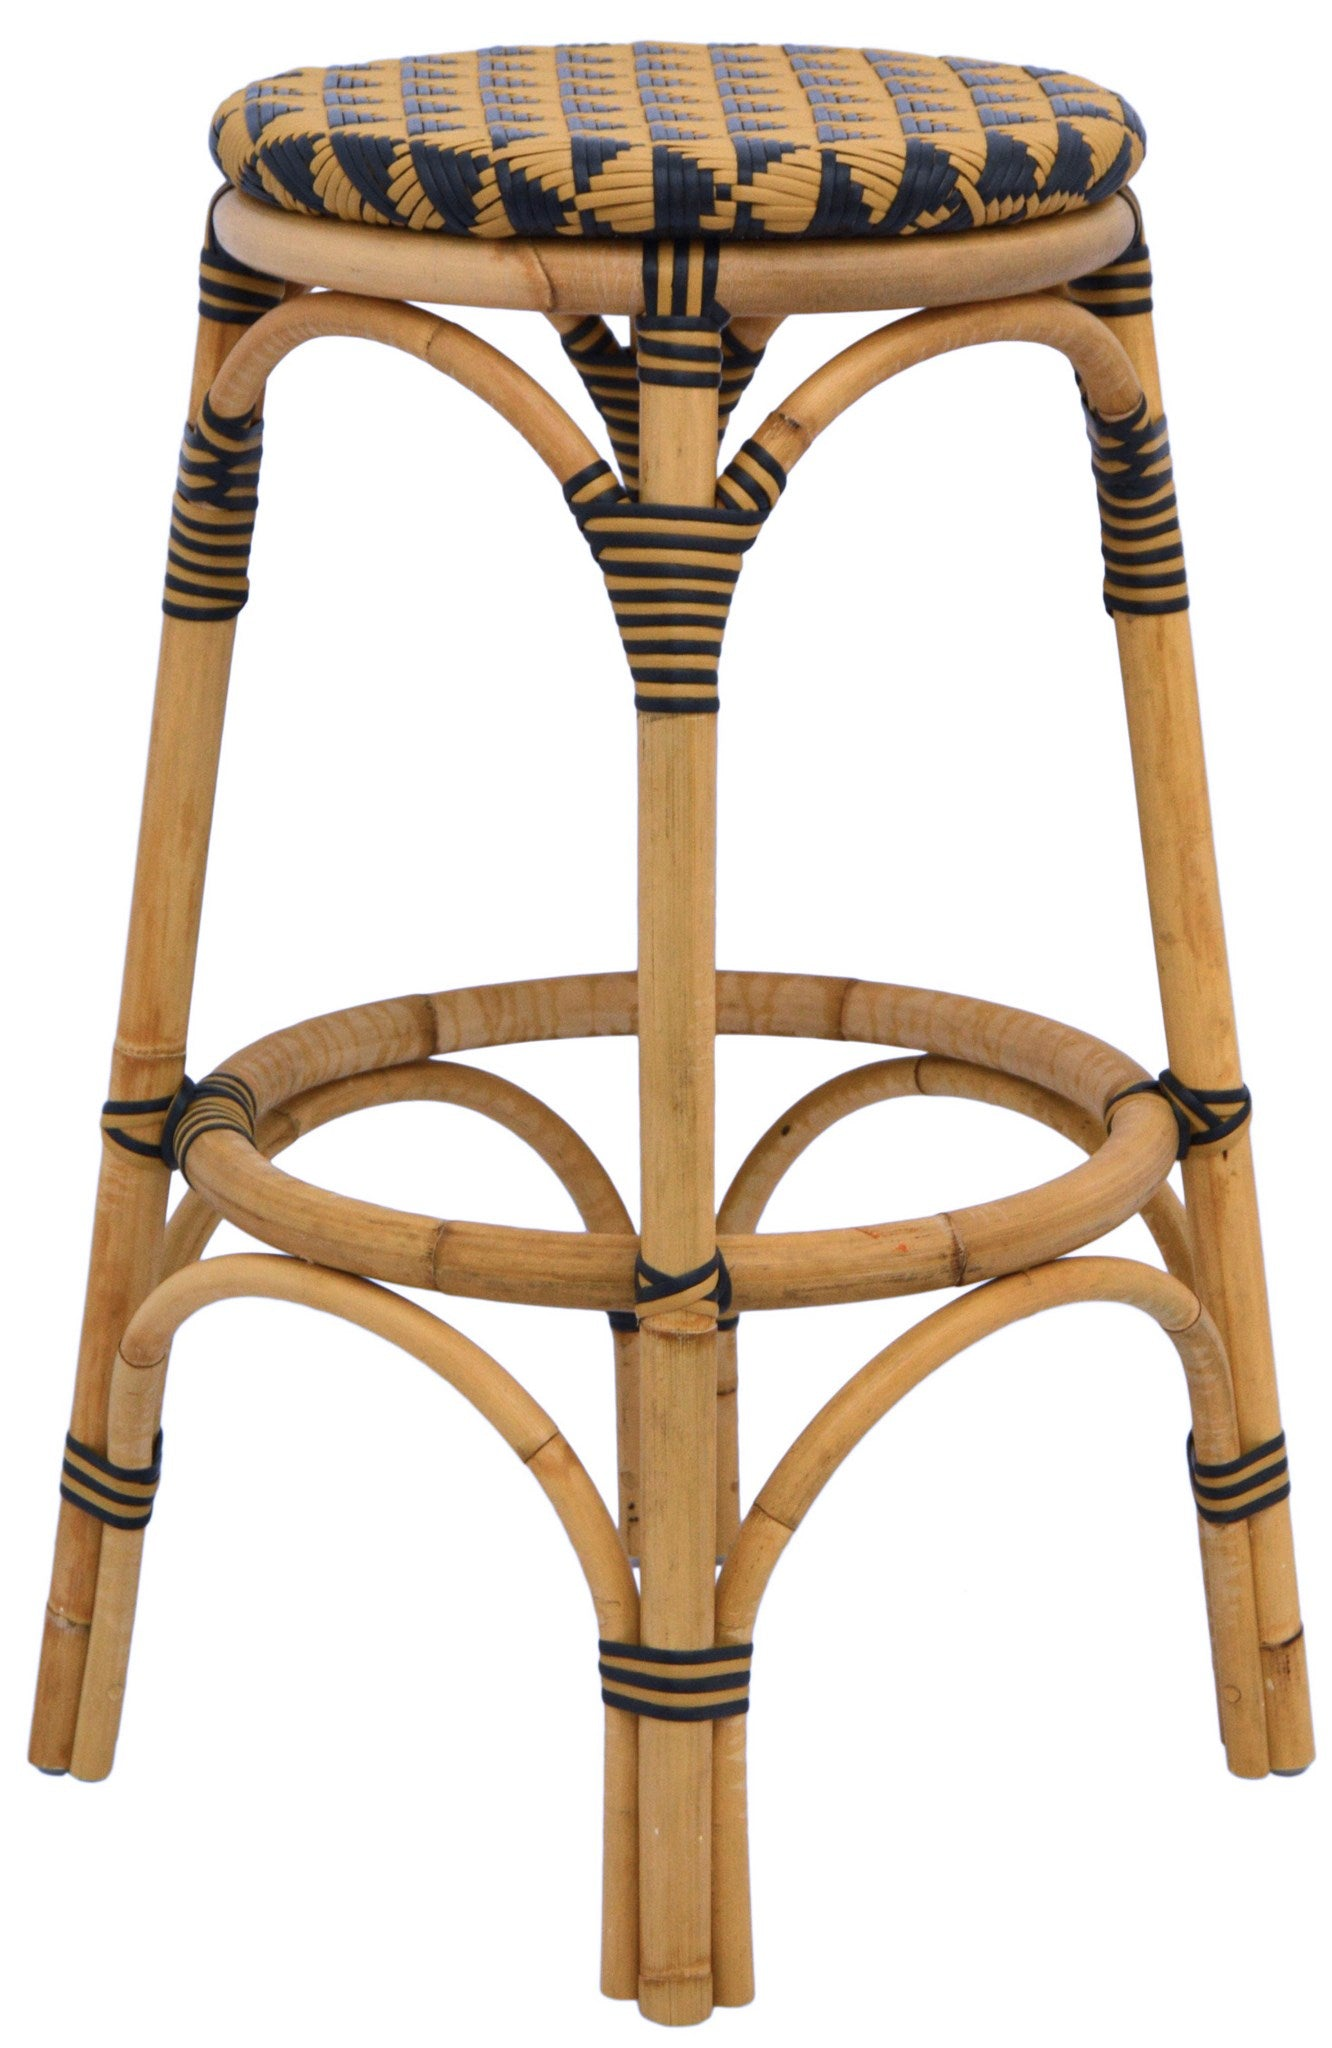 Pinnacles Bar Stool - Natural/Black by Selamat